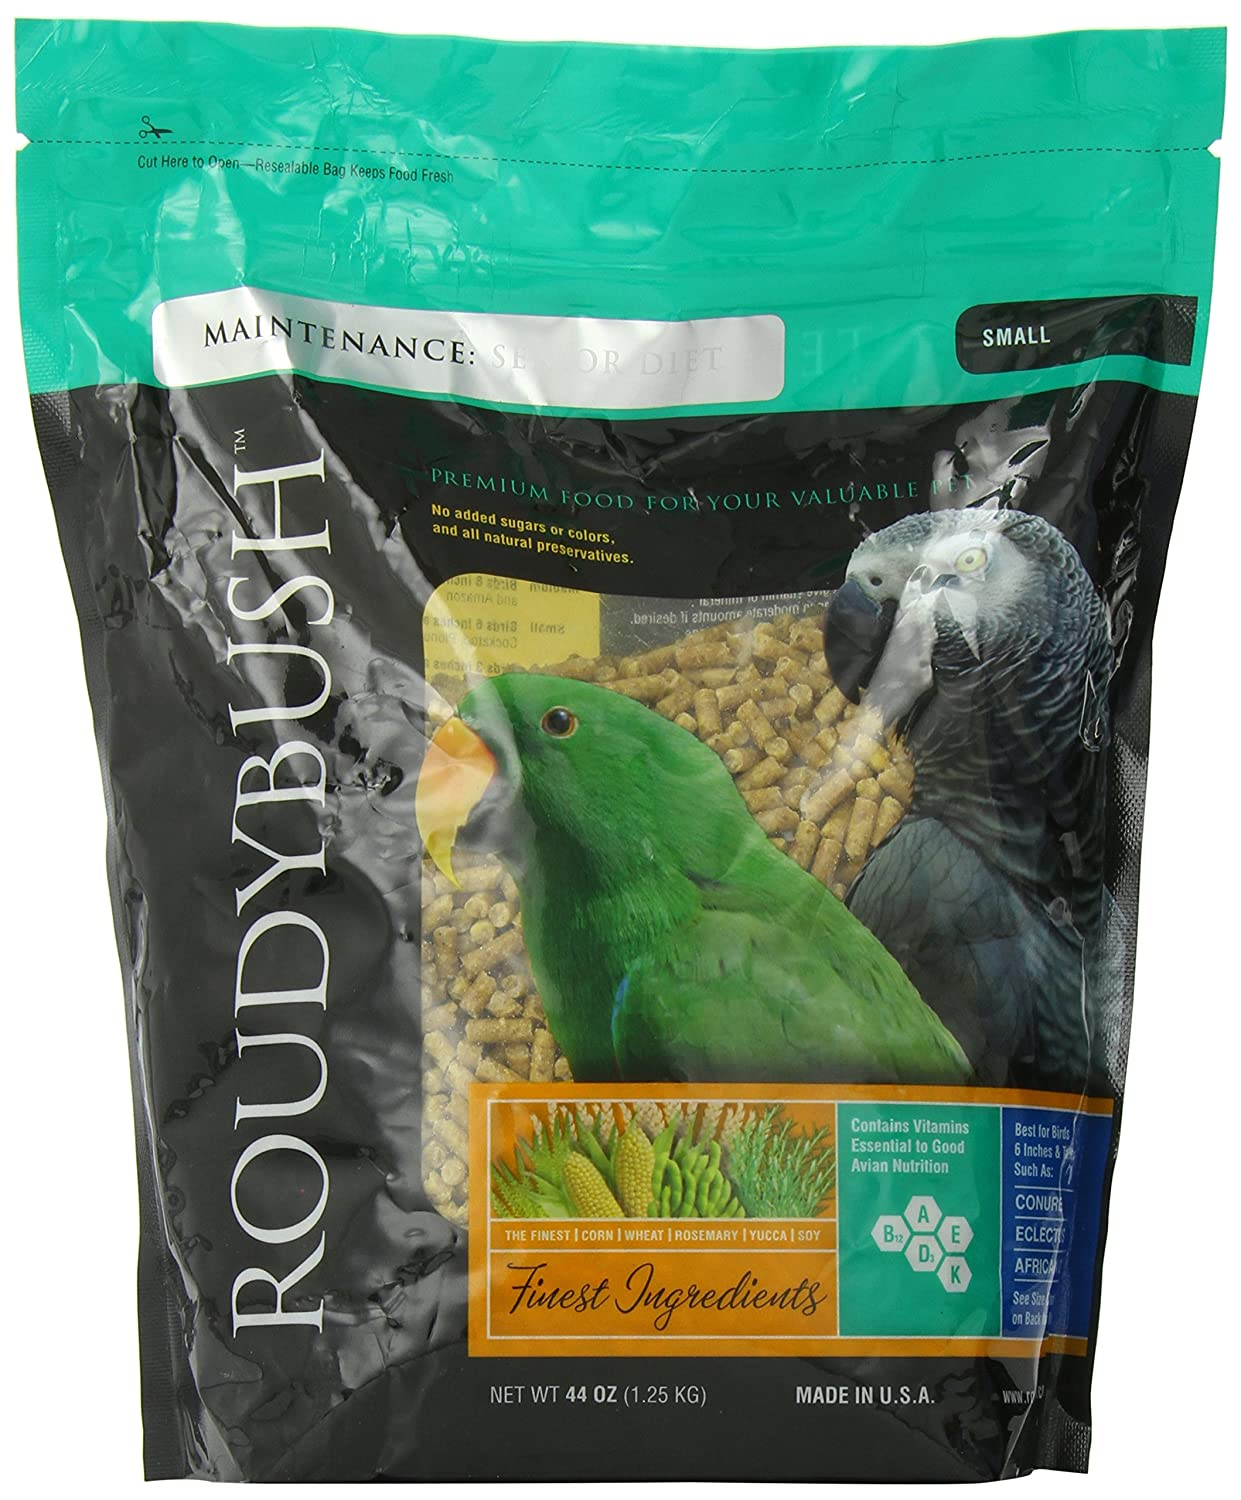 B003NTLCR0 RoudyBush Senior Diet, Small Pellets 91Tv4Qm0KjL